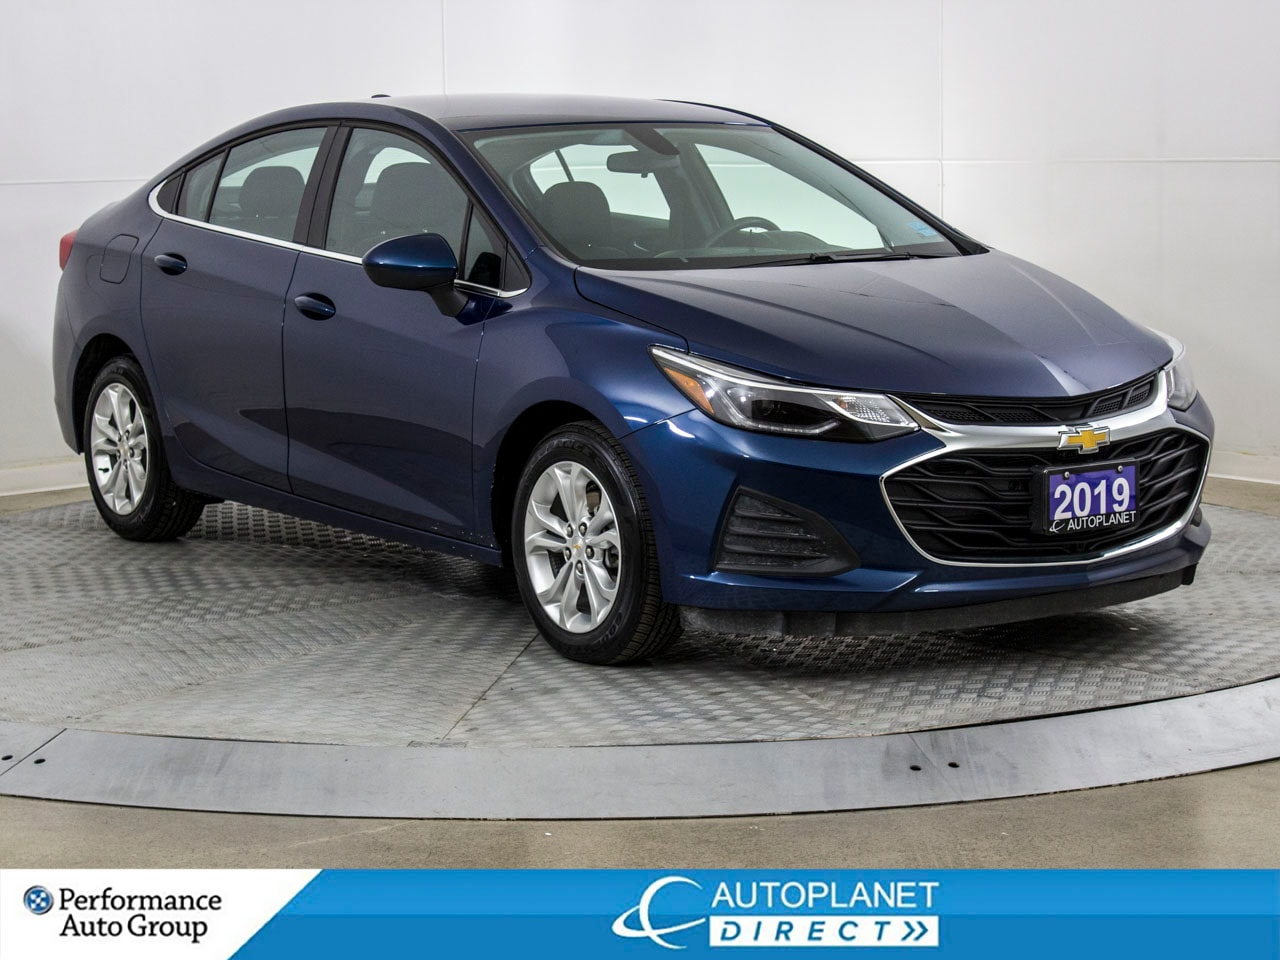 Used 2019 Chevrolet Cruze For Sale at Auto Planet | VIN